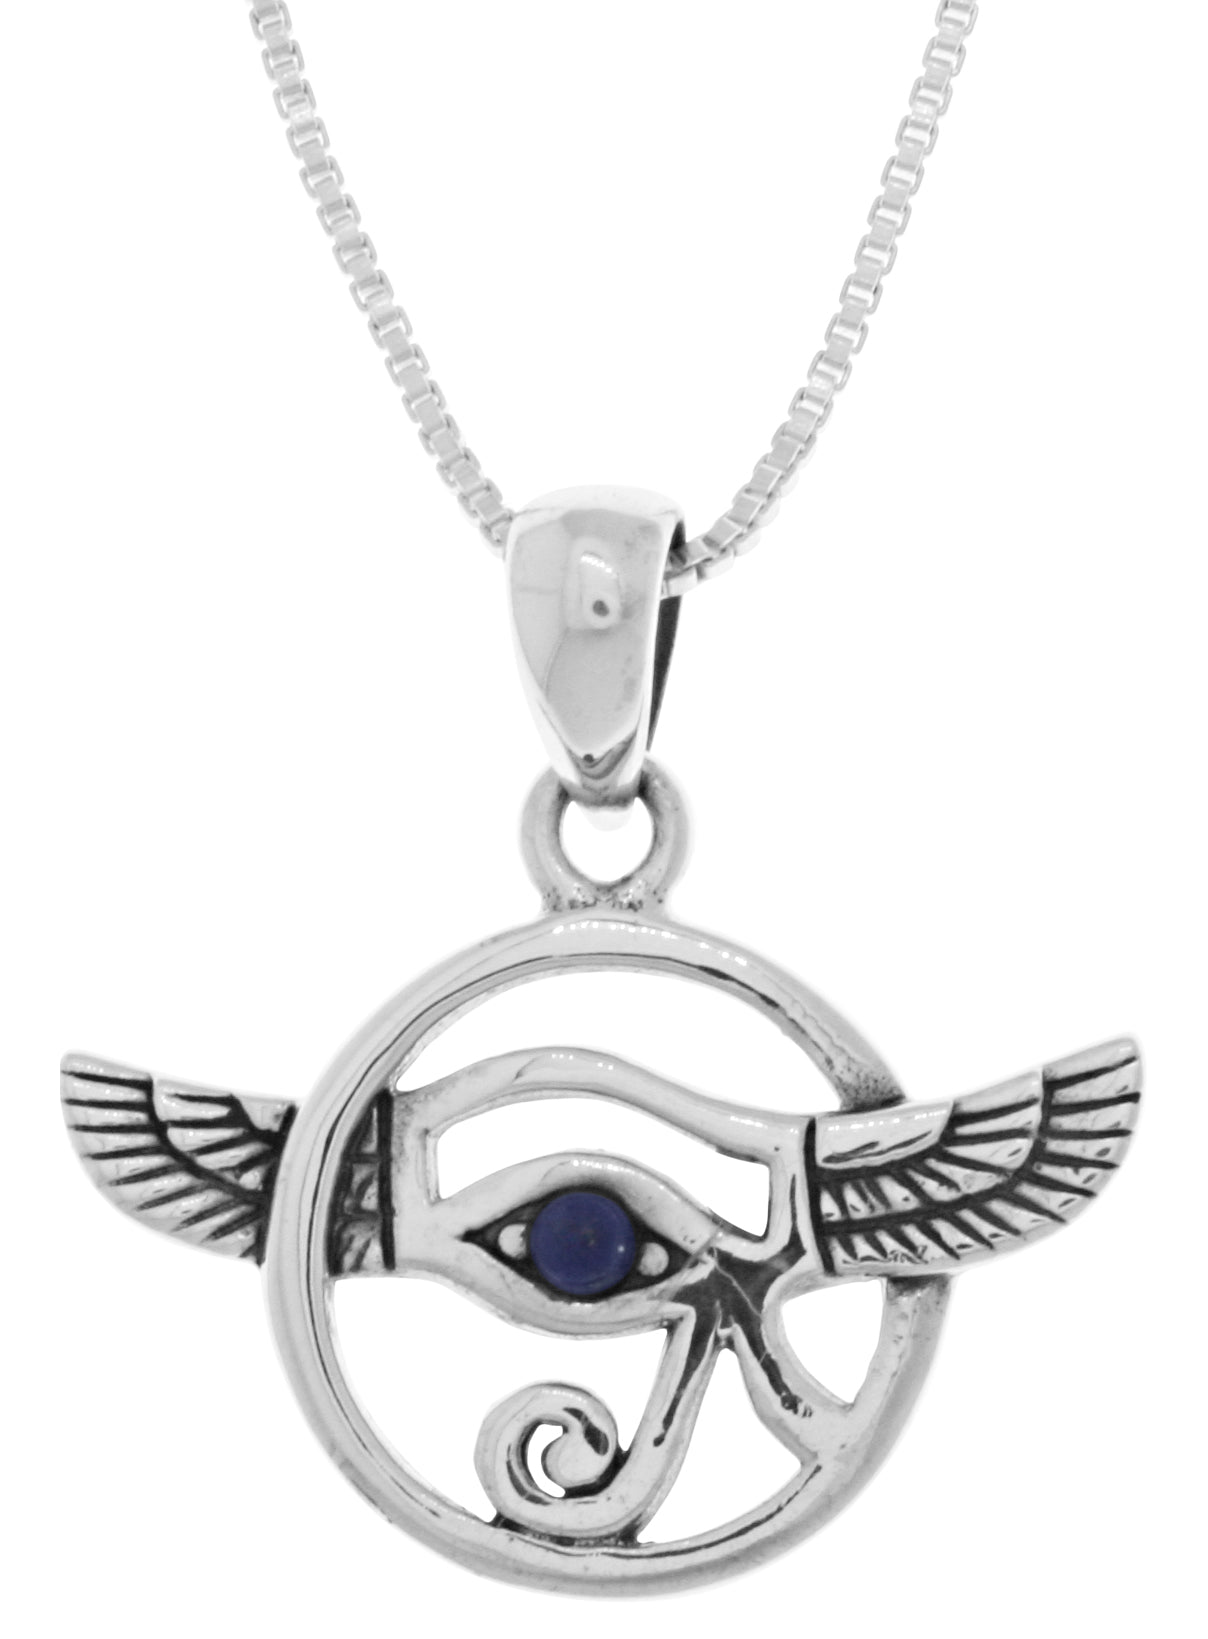 Jewelry Trends Sterling Silver Winged Eye Of Horus Pendant with Synthetic Blue Lapis on 18 Inch Box Chain Necklace